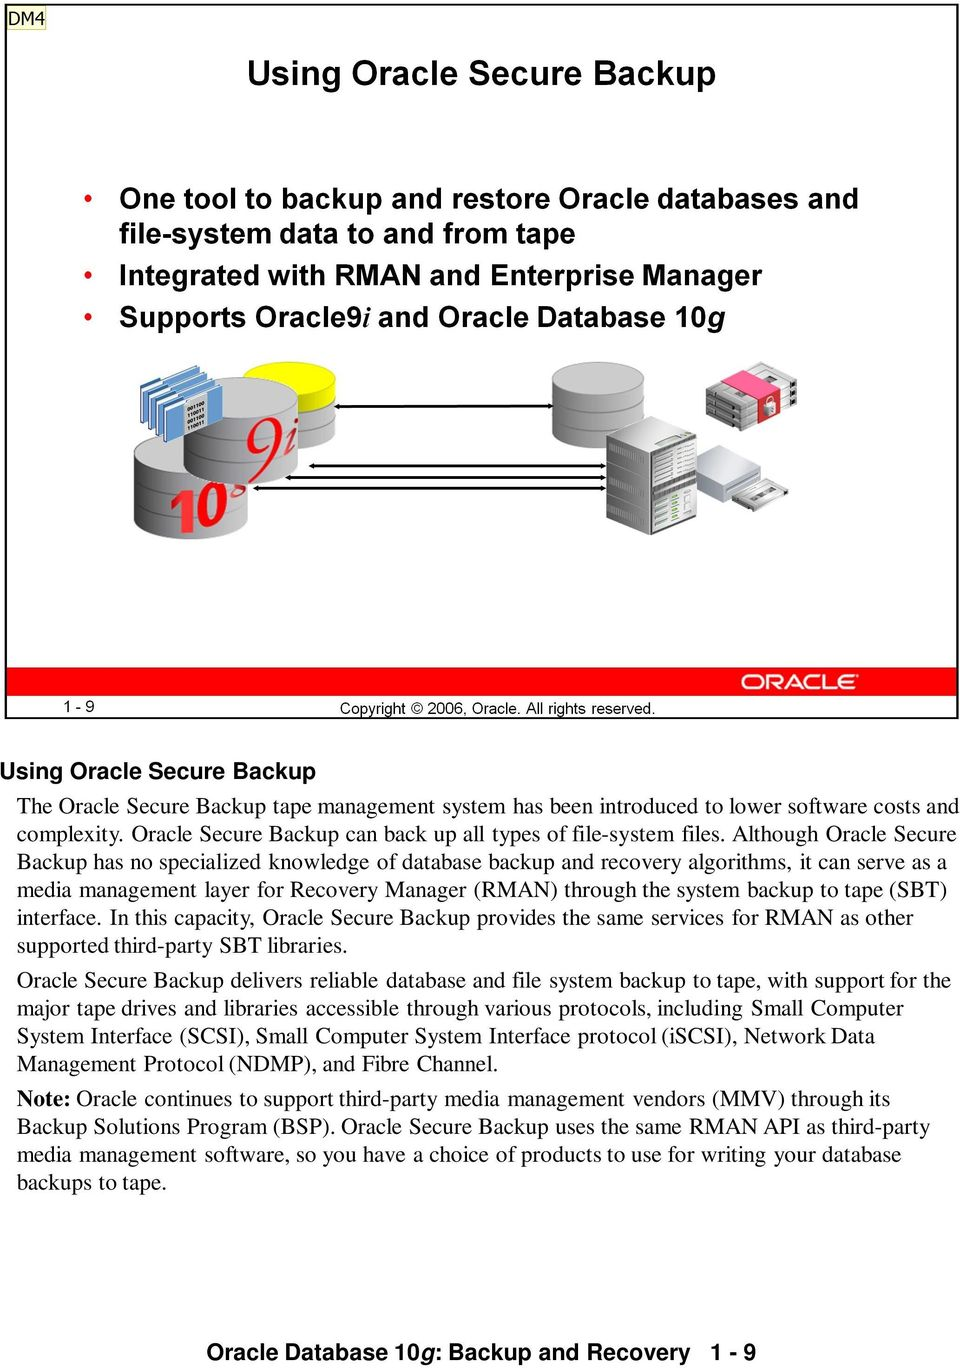 to tape (SBT) interface. In this capacity, Oracle Secure Backup provides the same services for RMAN as other supported third-party SBT libraries.